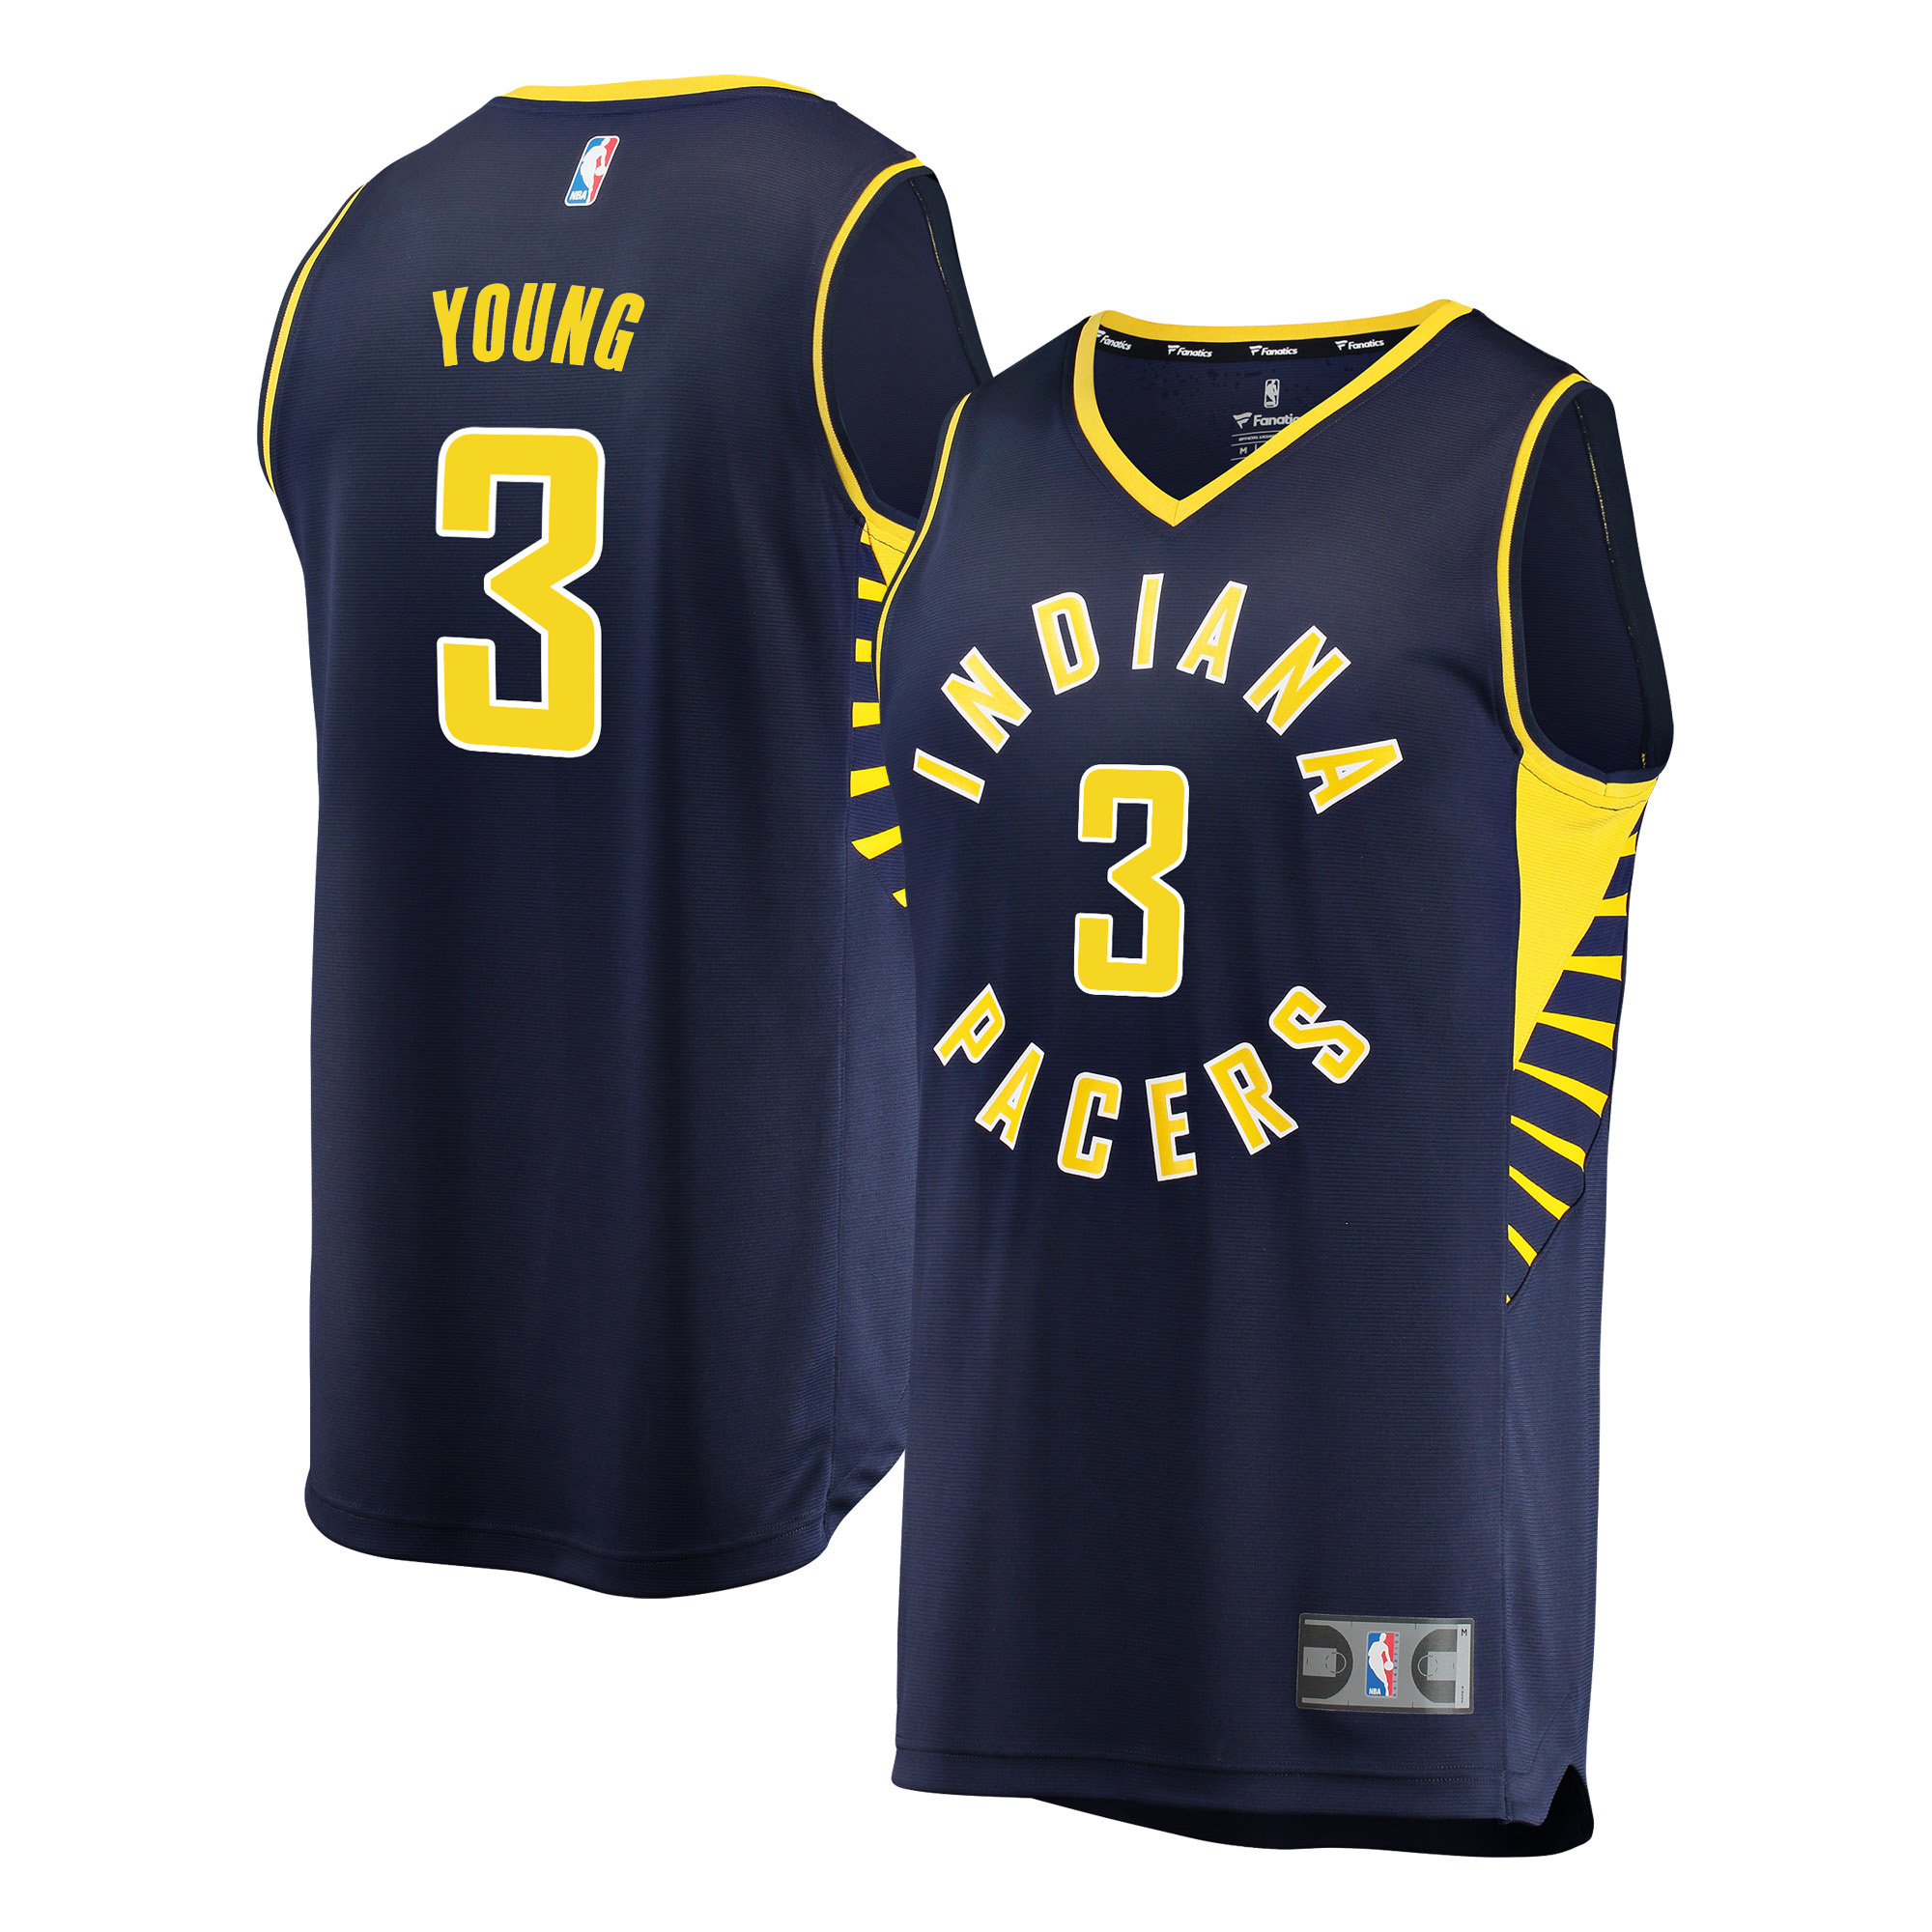 Indiana Pacers Joe Young Fanatics Branded Youth Fast Break Player Jersey - Icon Edition - Navy